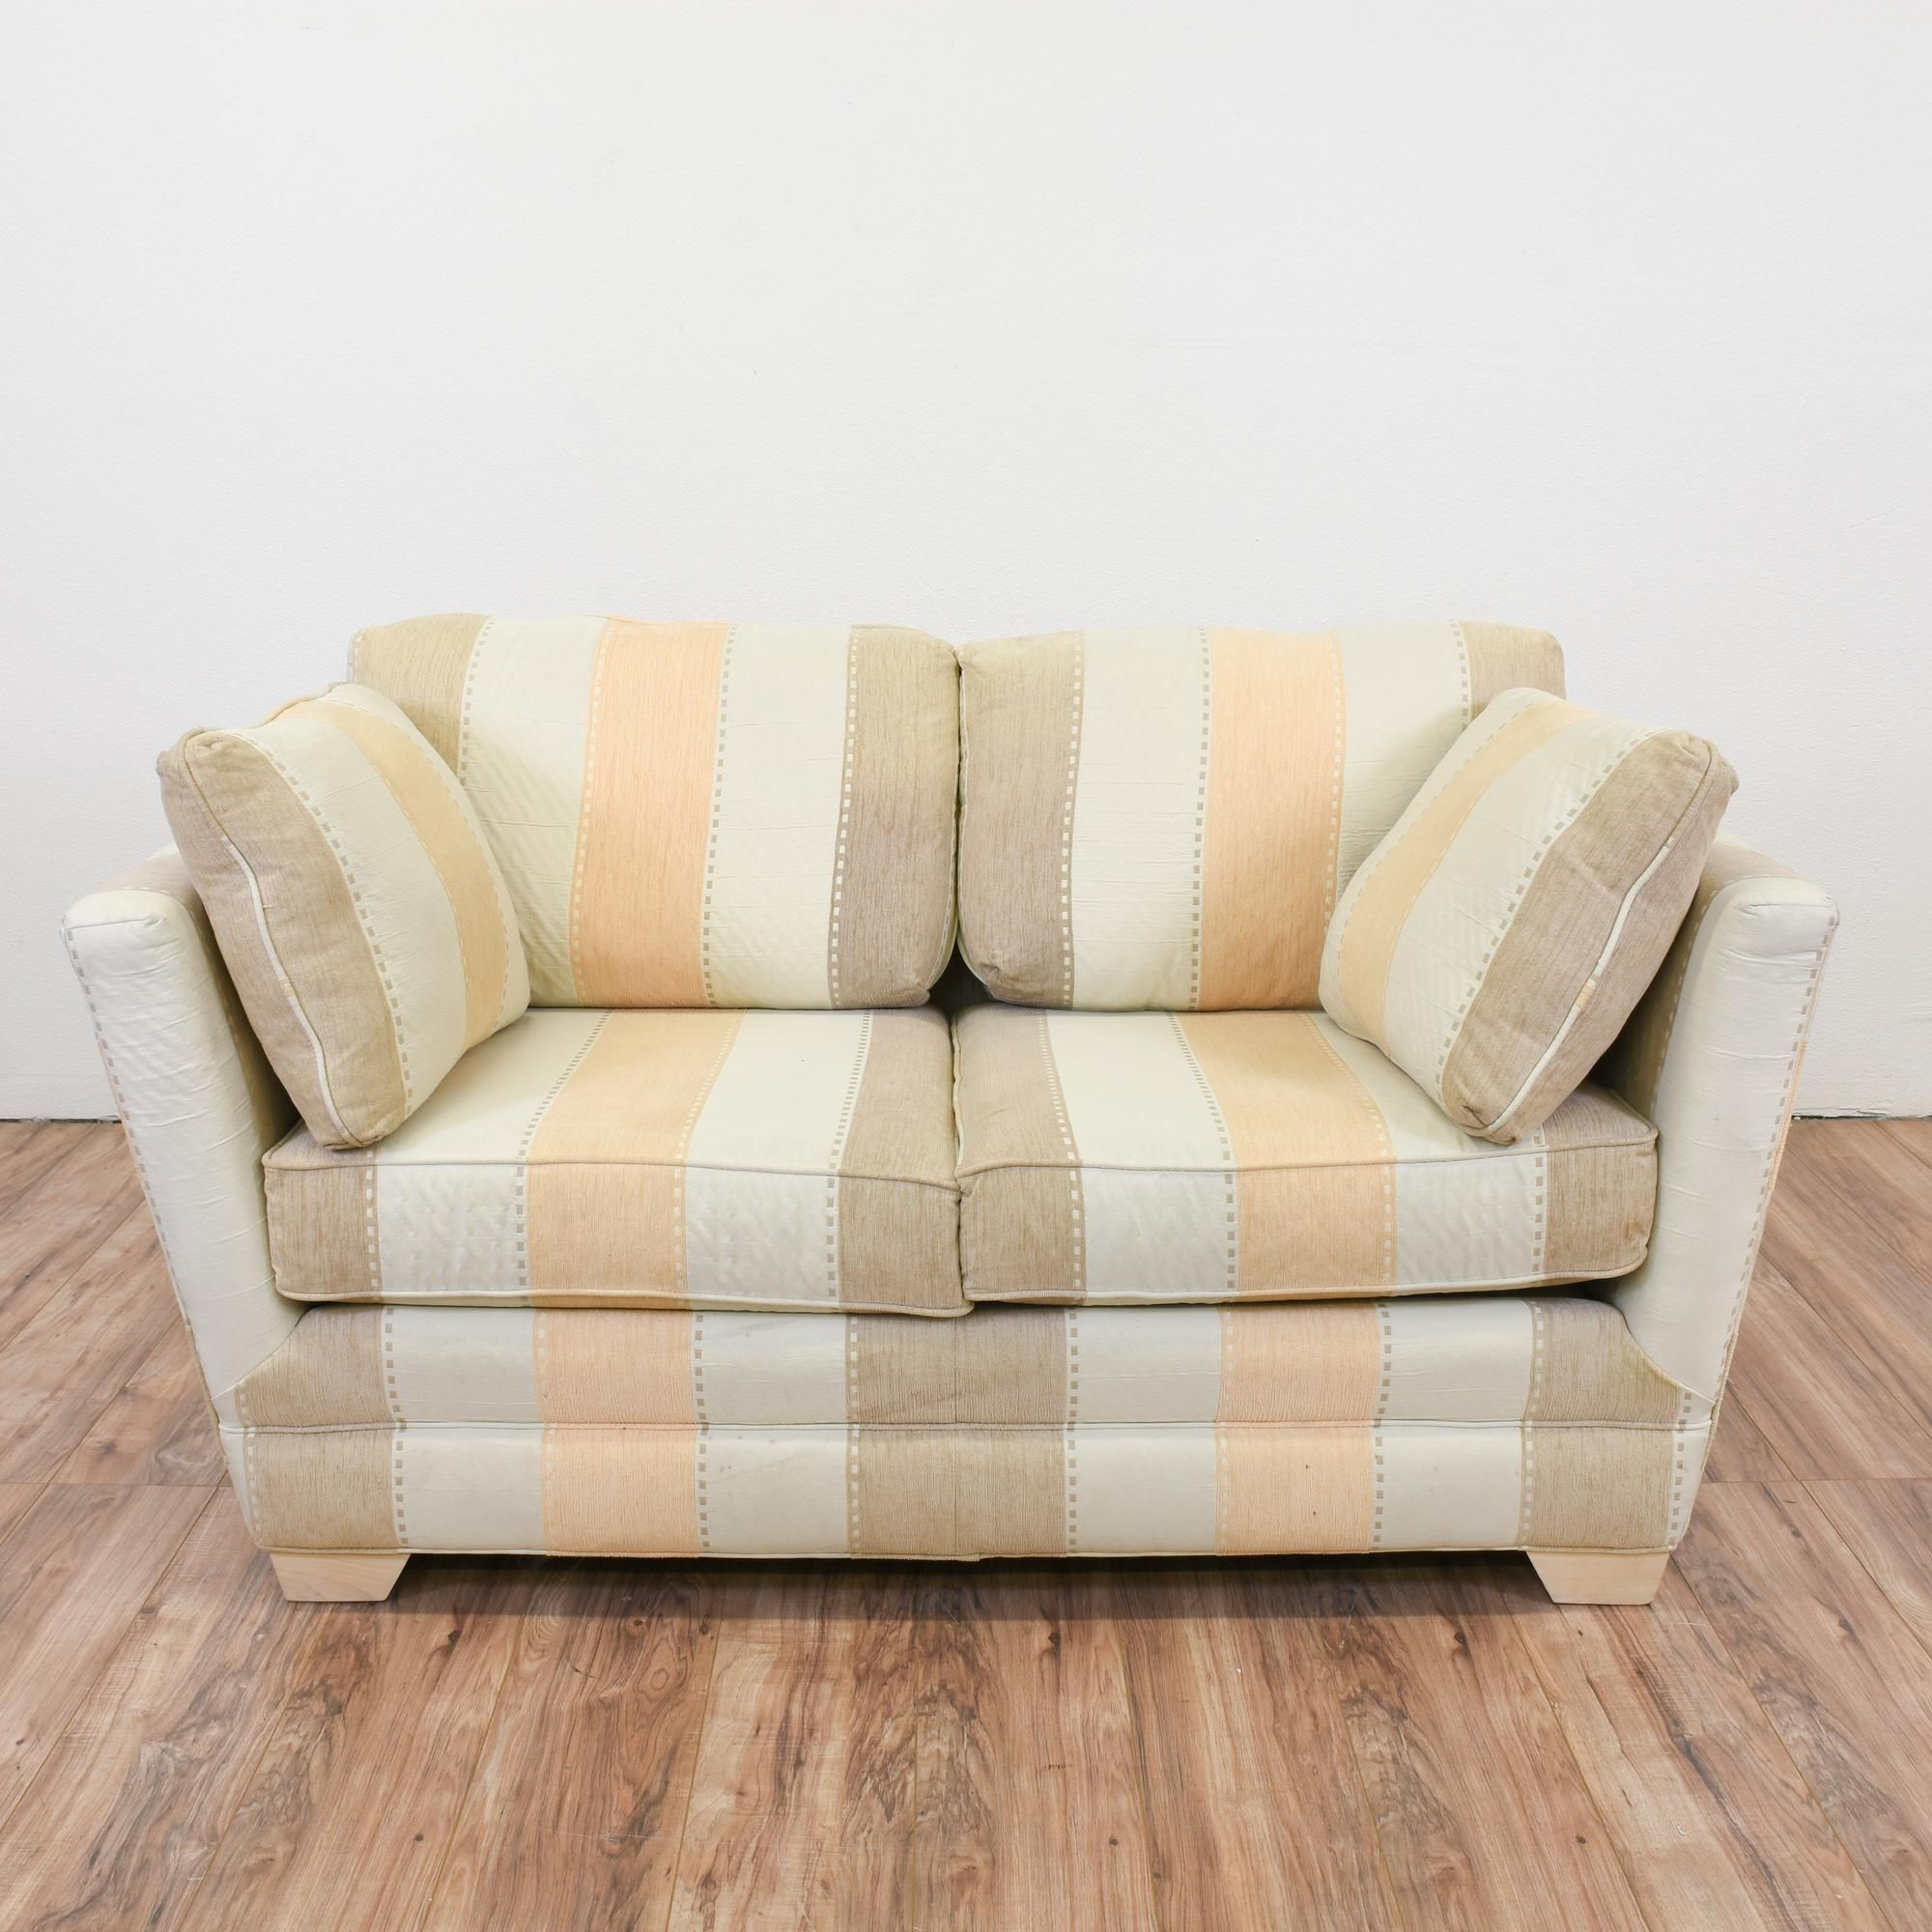 This Long Striped Loveseat Sofa Is Upholstered In Durable Fabric. The  Pattern On The Loveseat